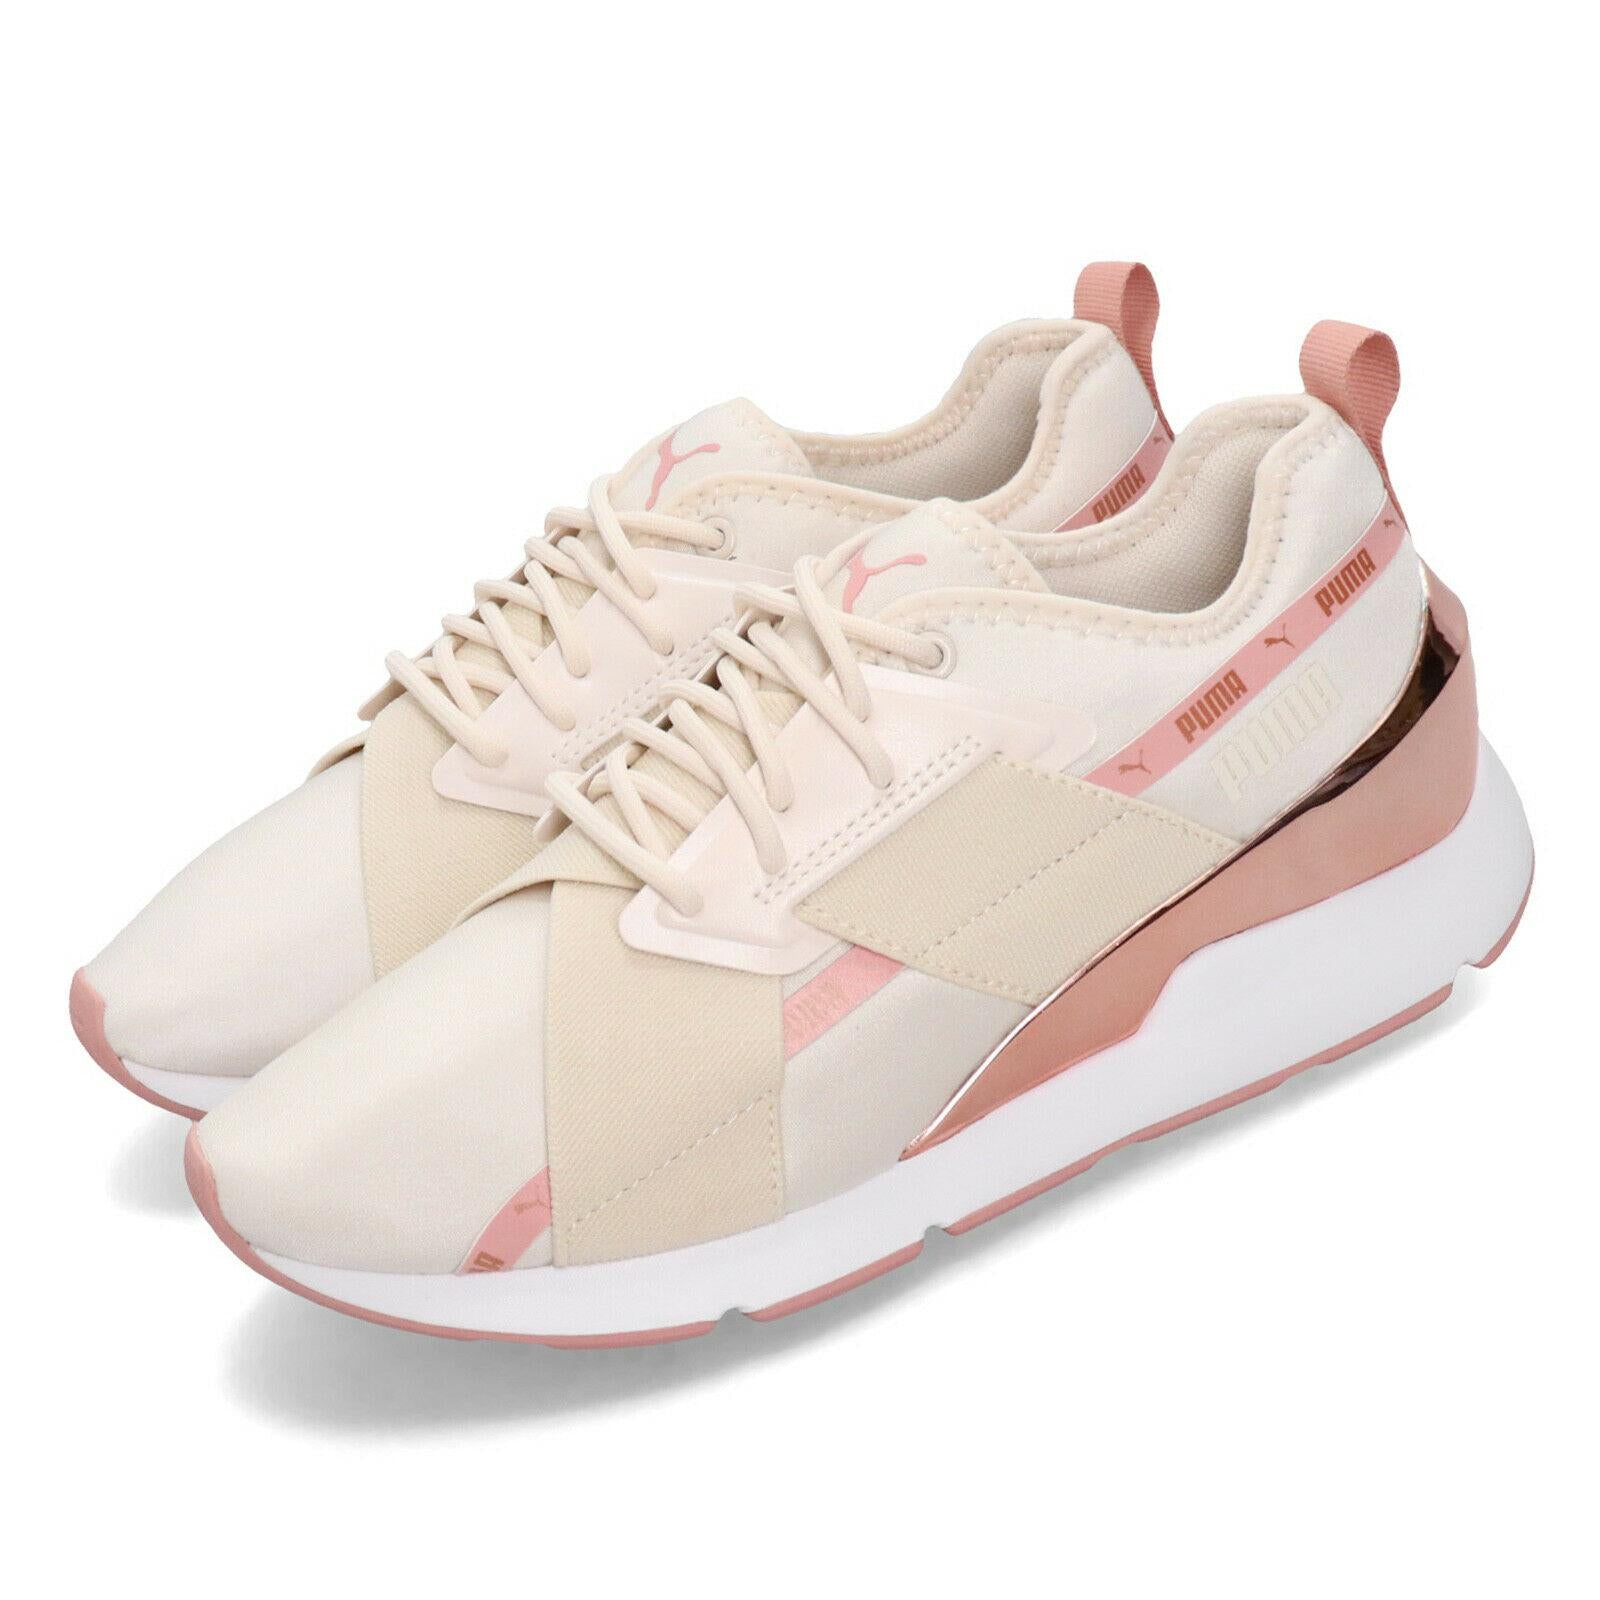 Puma Muse X2 Metallic Skate Shoes